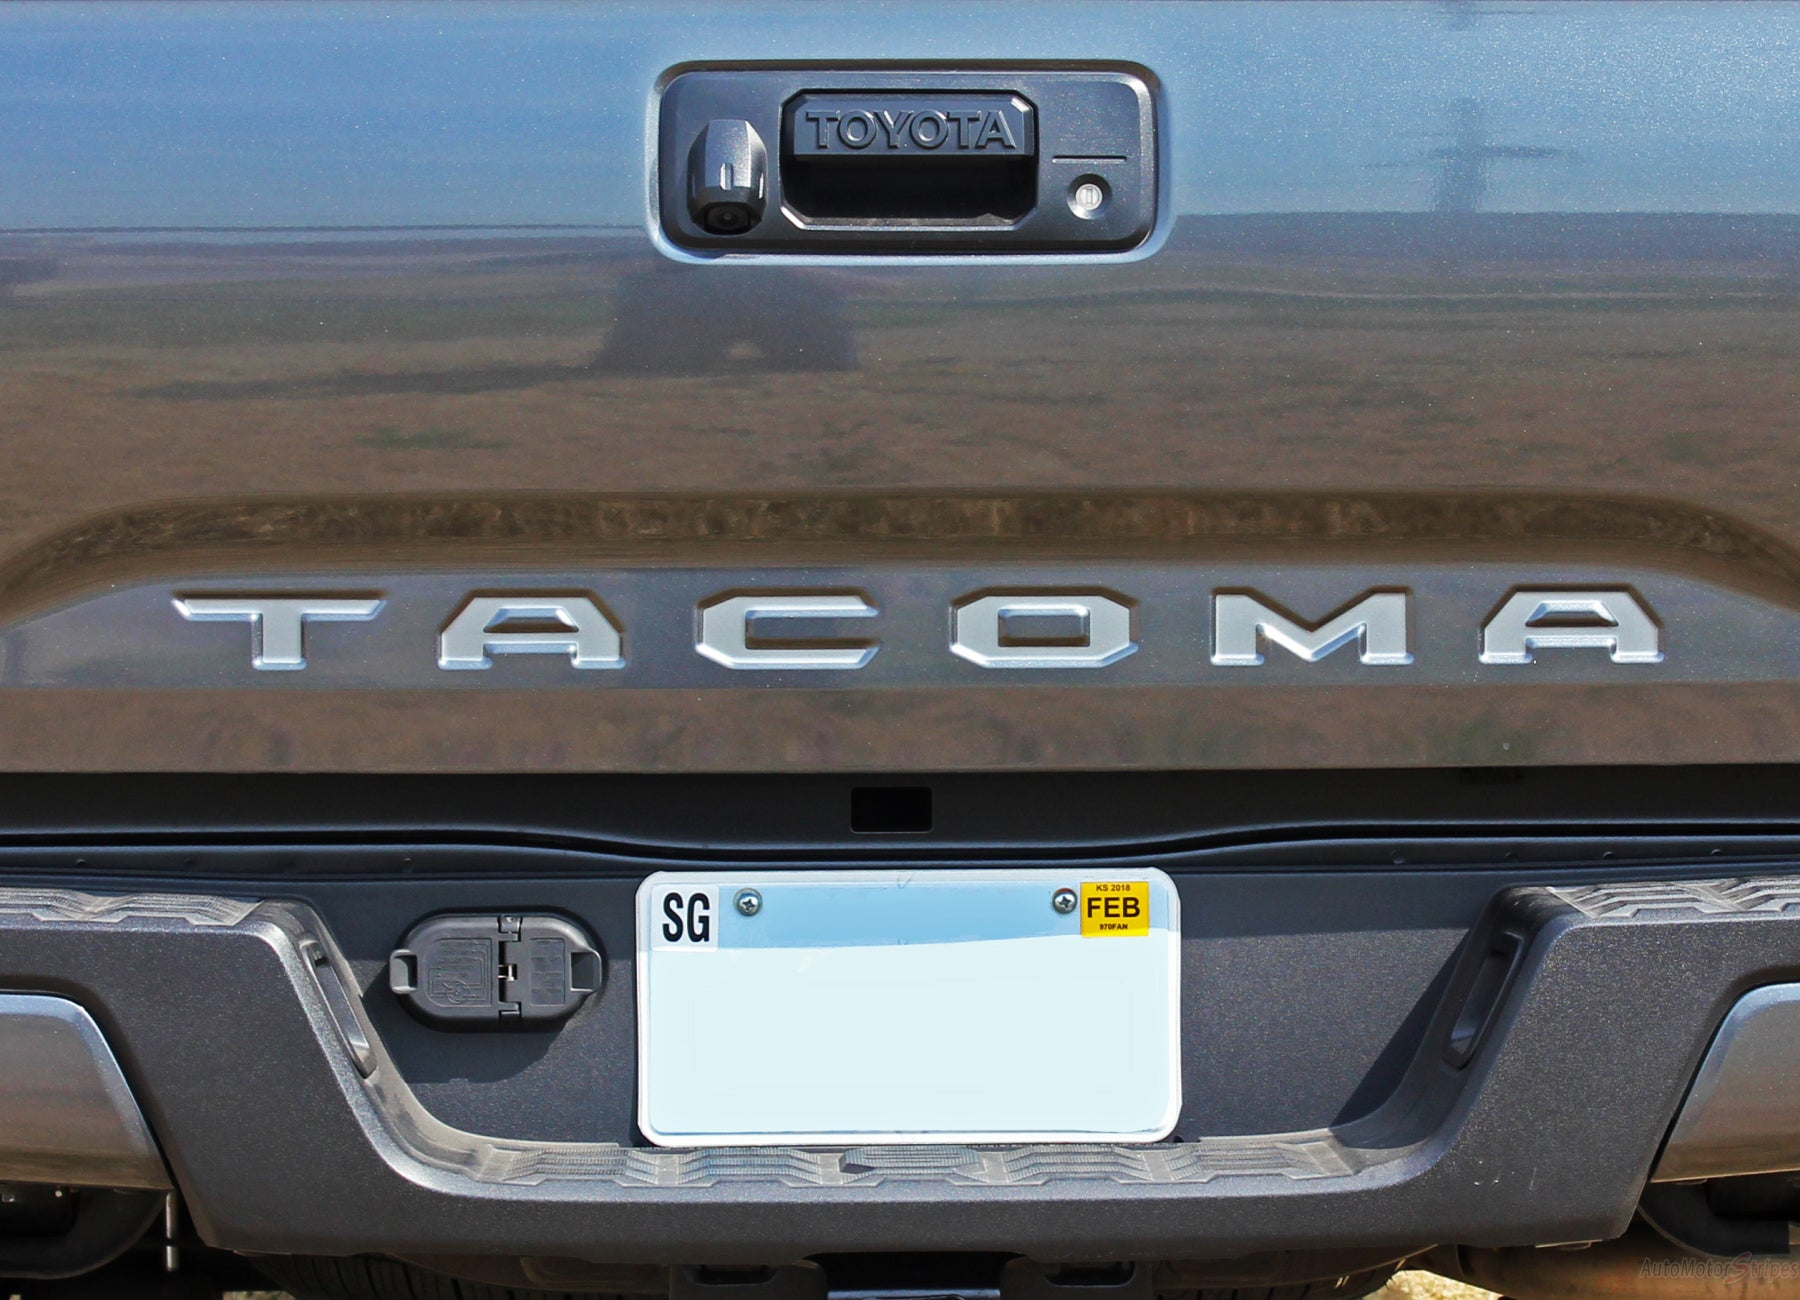 toyota-tacoma-truck-vinyl-graphics-decals-stripes-bed-striping-3m-1080-2015-2016-2017-2018-ams-tailgate-06 Great Description About Tacoma Tailgate